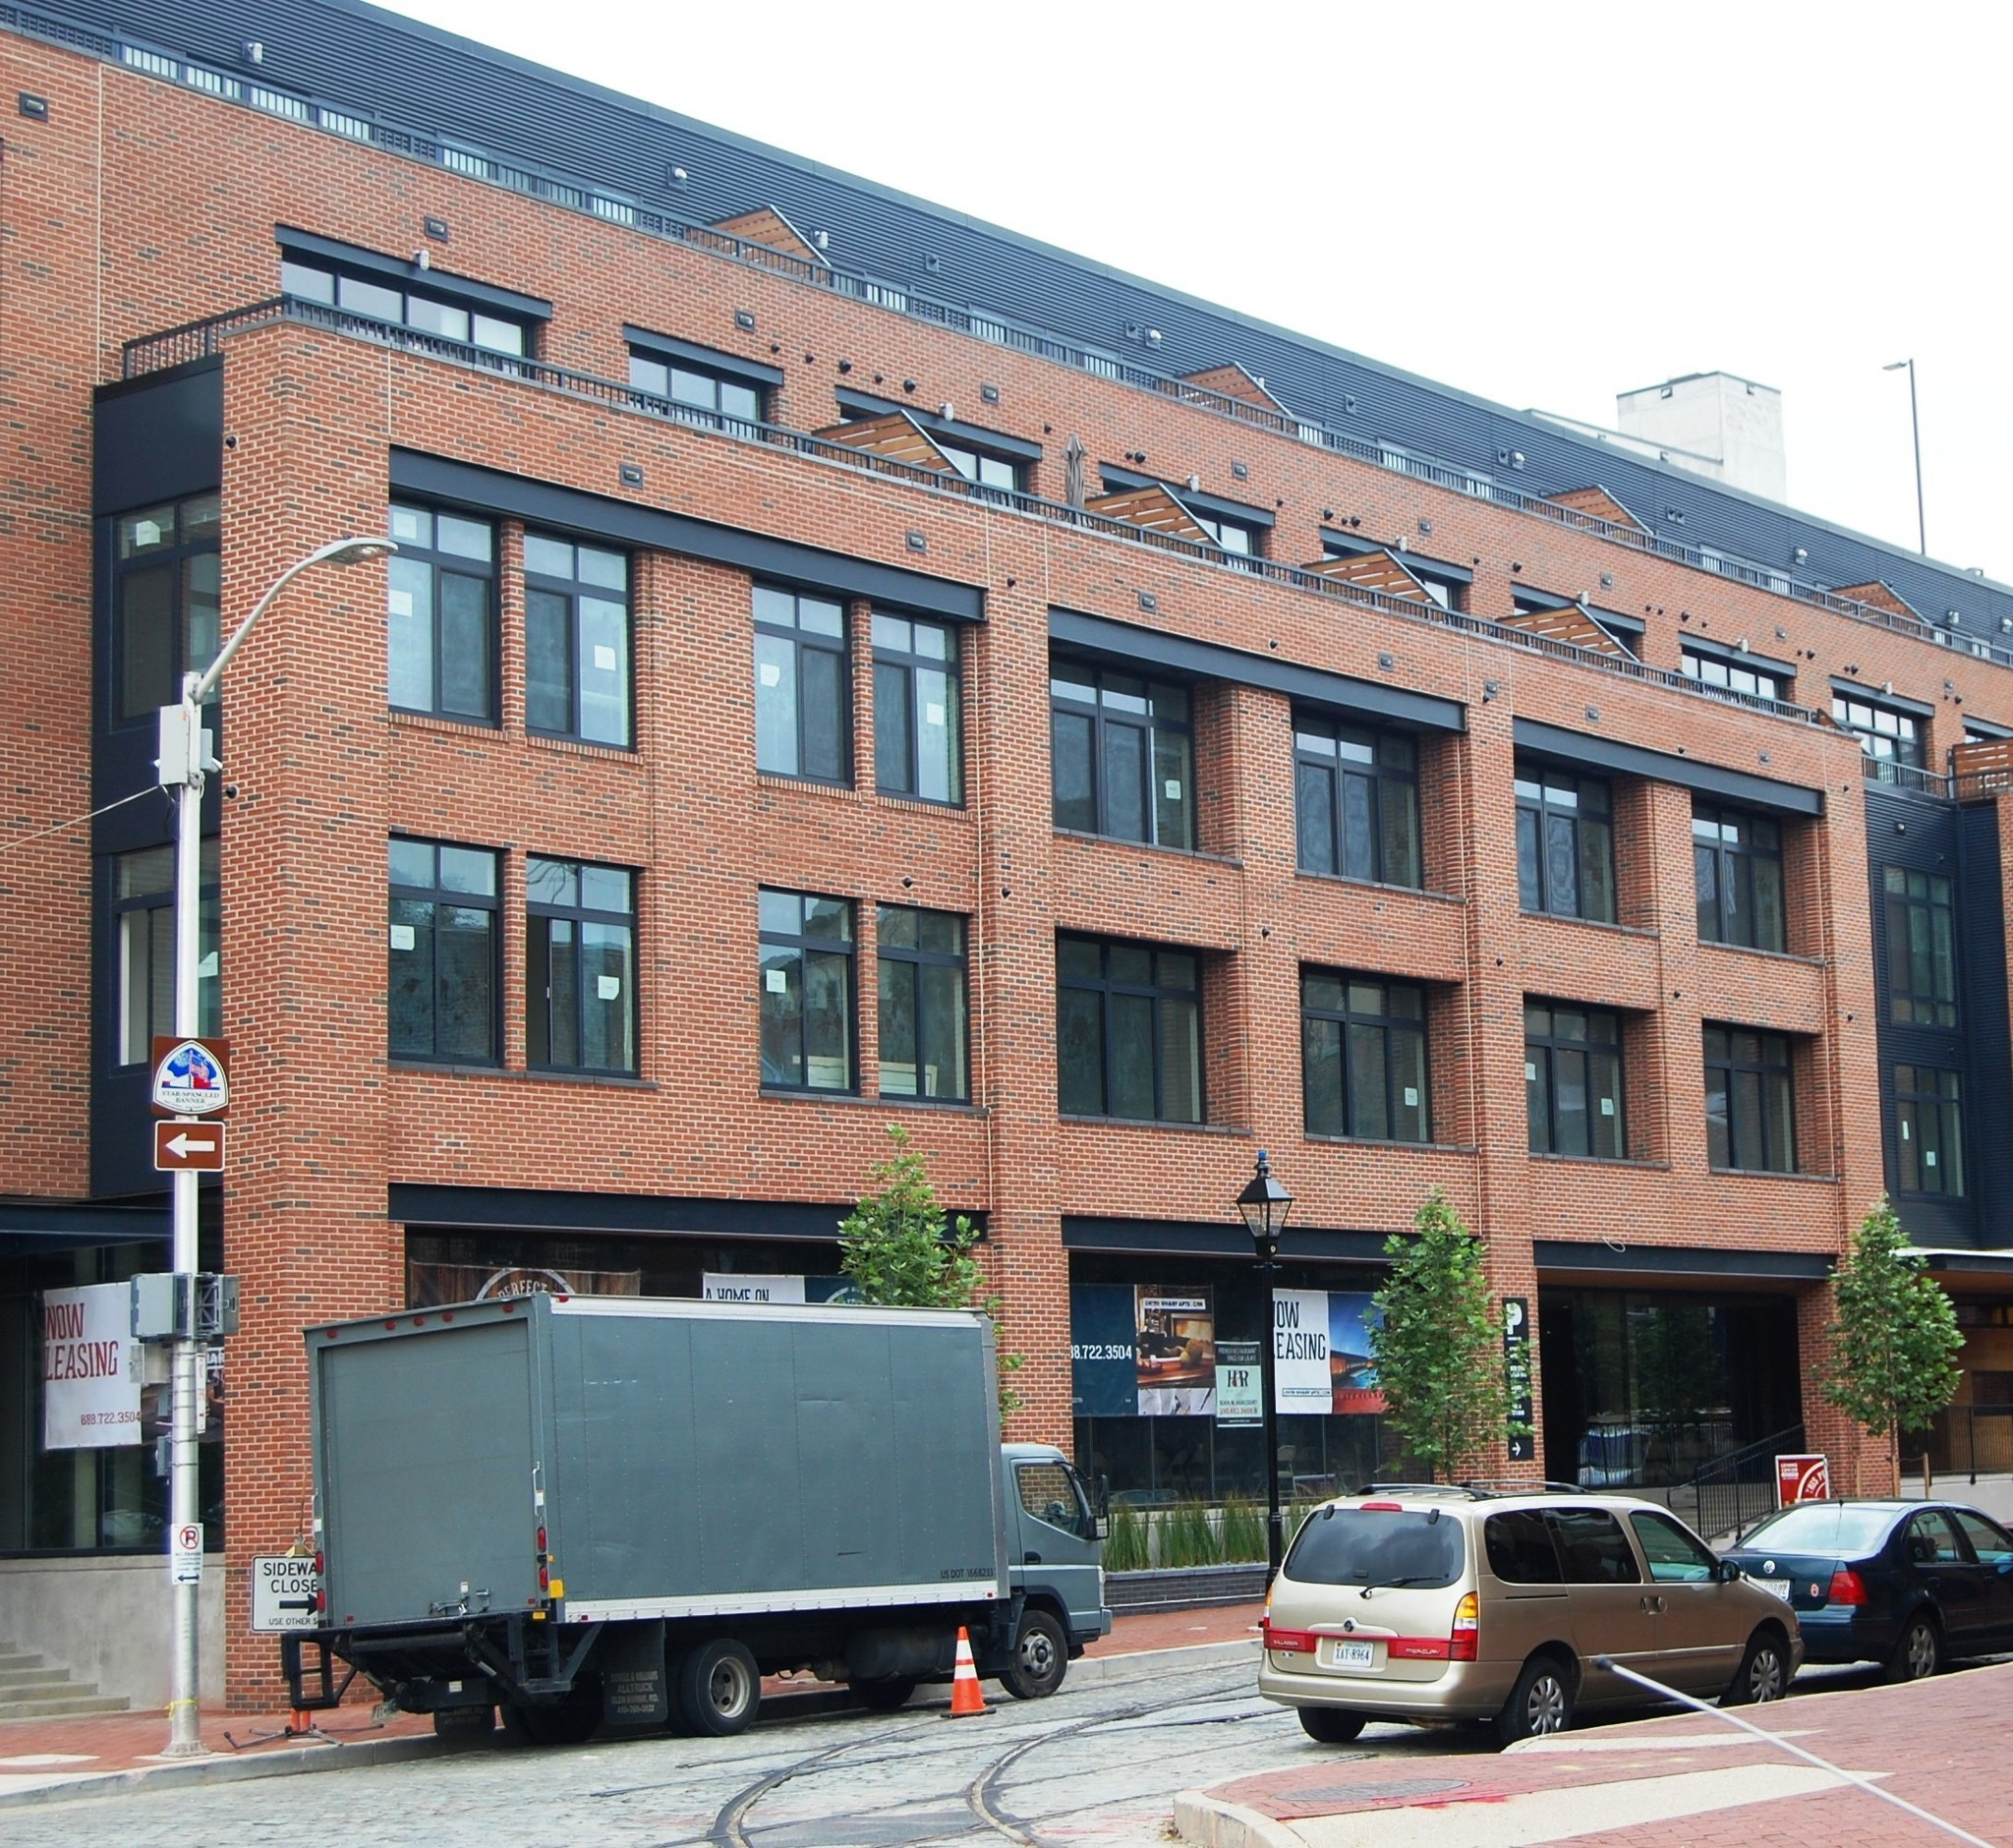 Fells Point Apartments: Union Wharf Apartments Sell For $121.5 Million